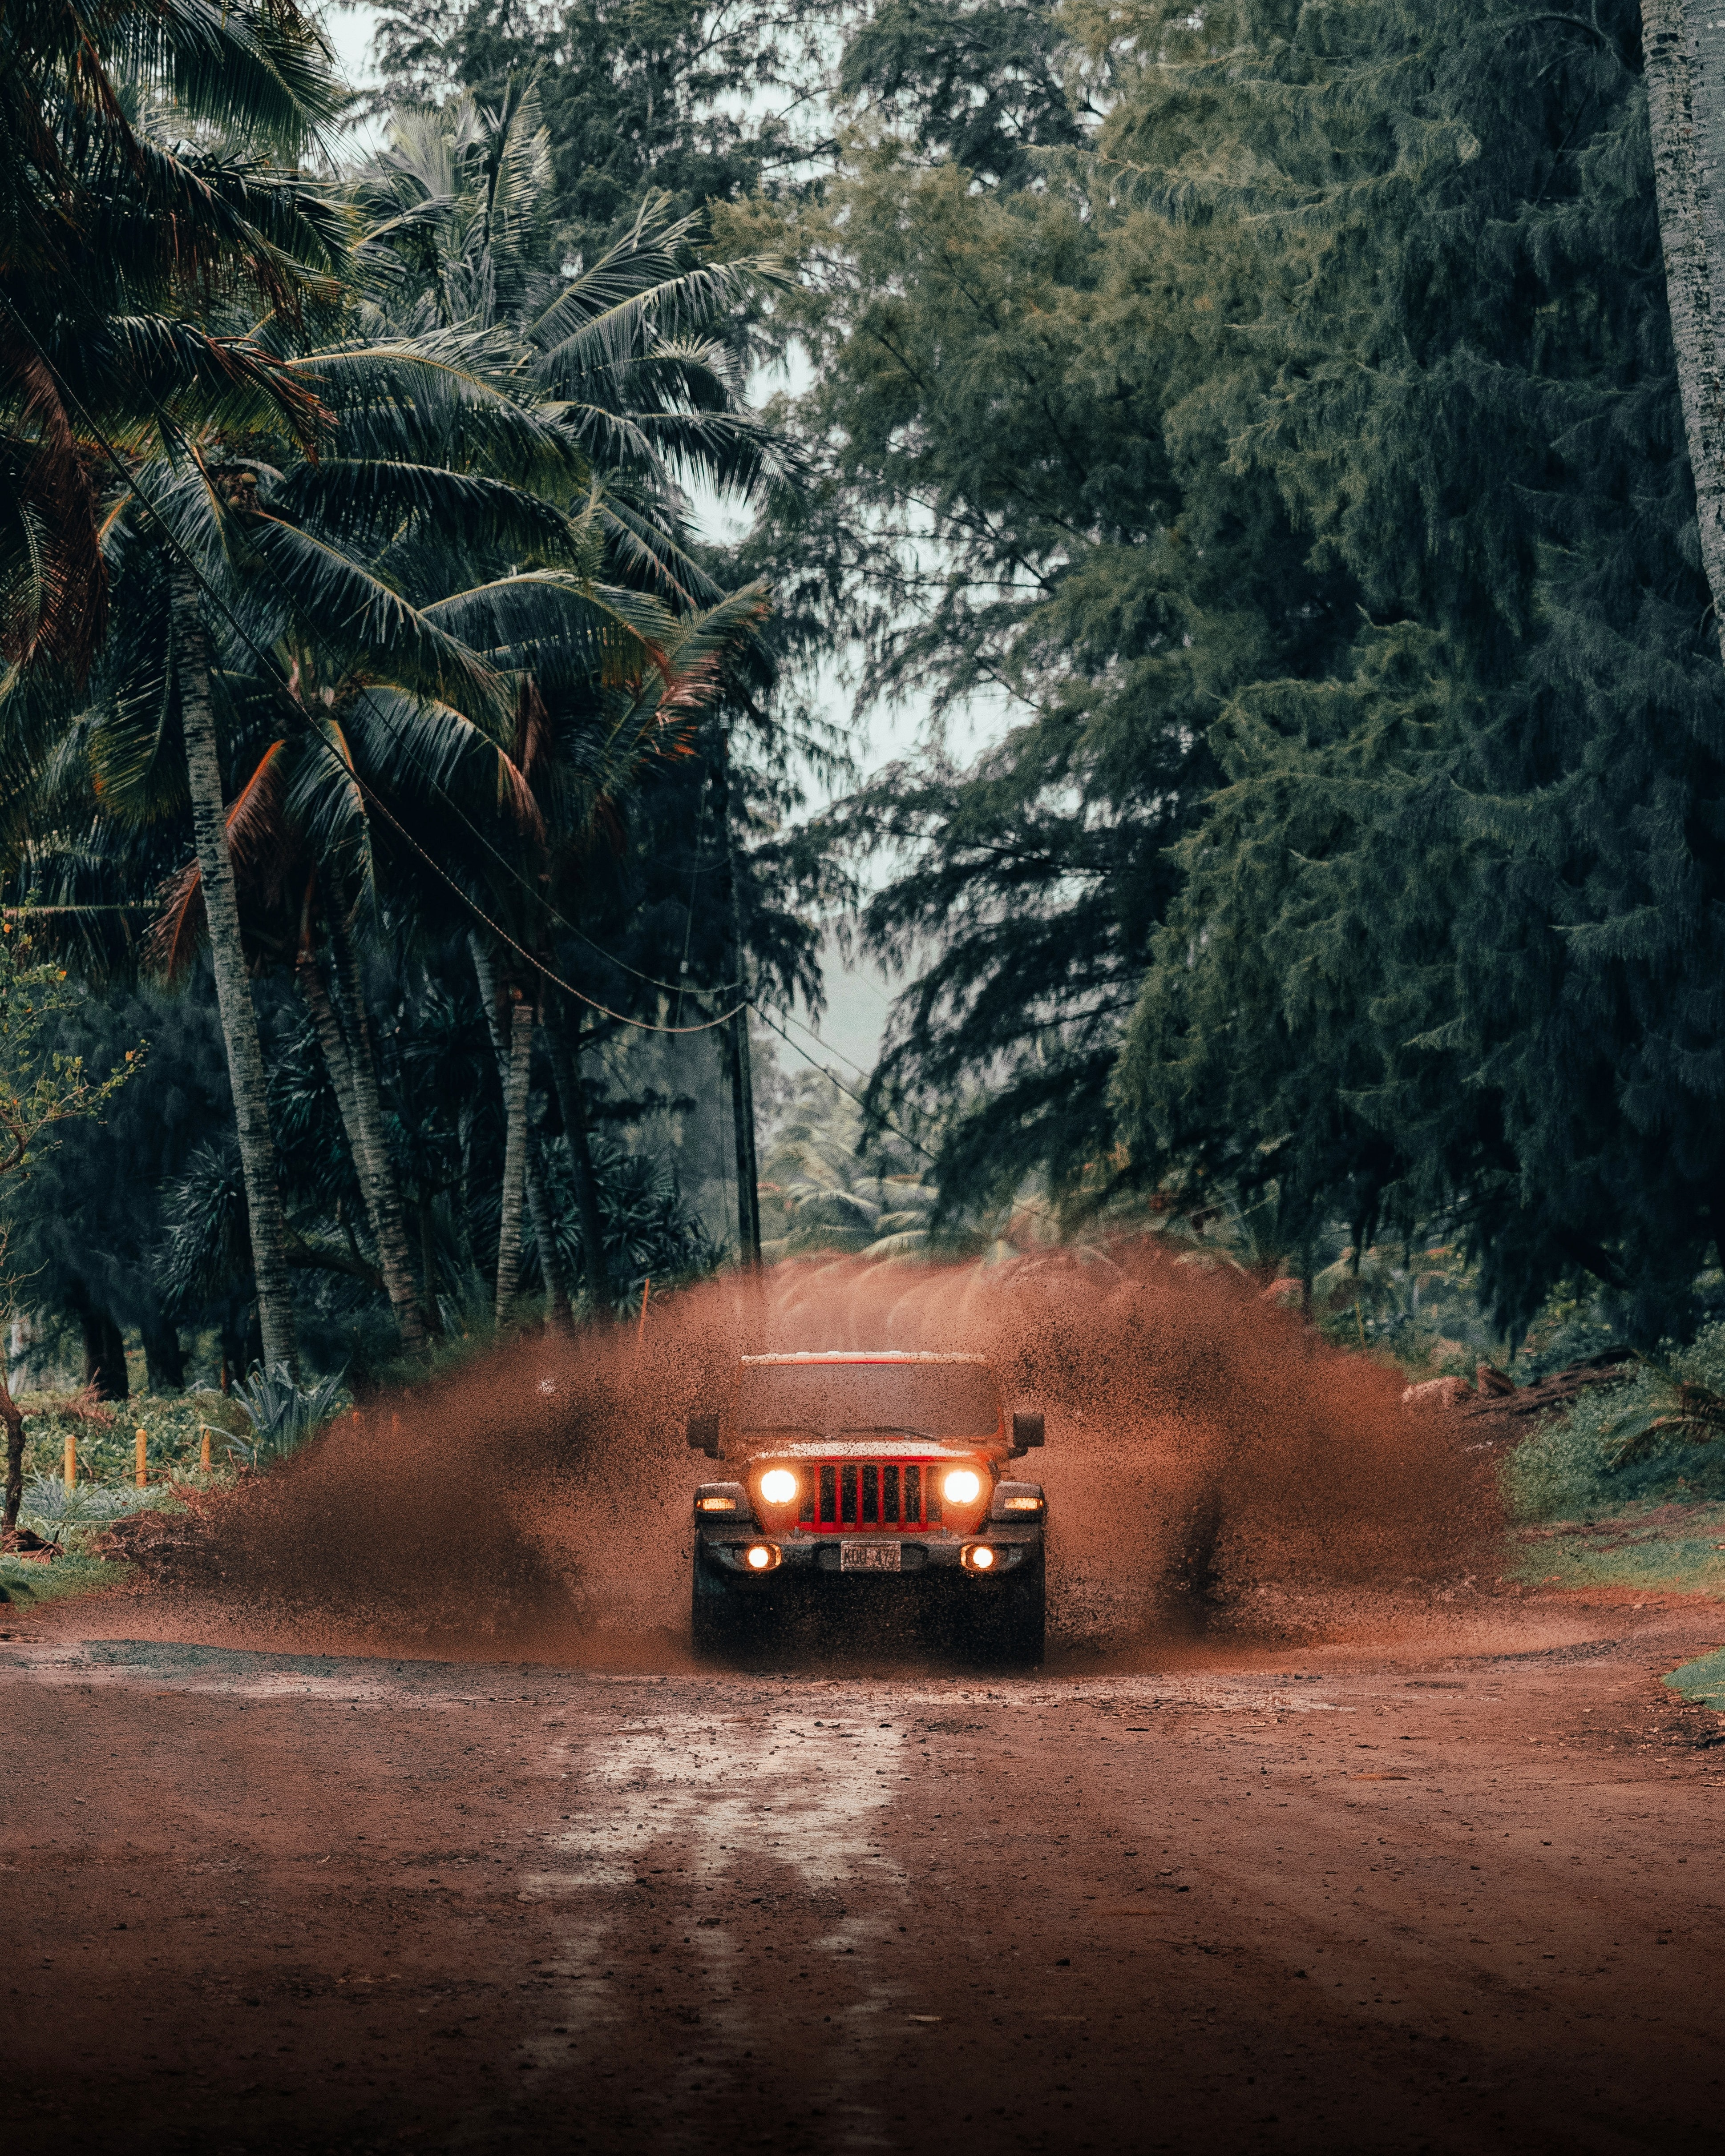 129505 download wallpaper Cars, Jeep Wrangler, Jeep, Car, Suv, Tropics screensavers and pictures for free